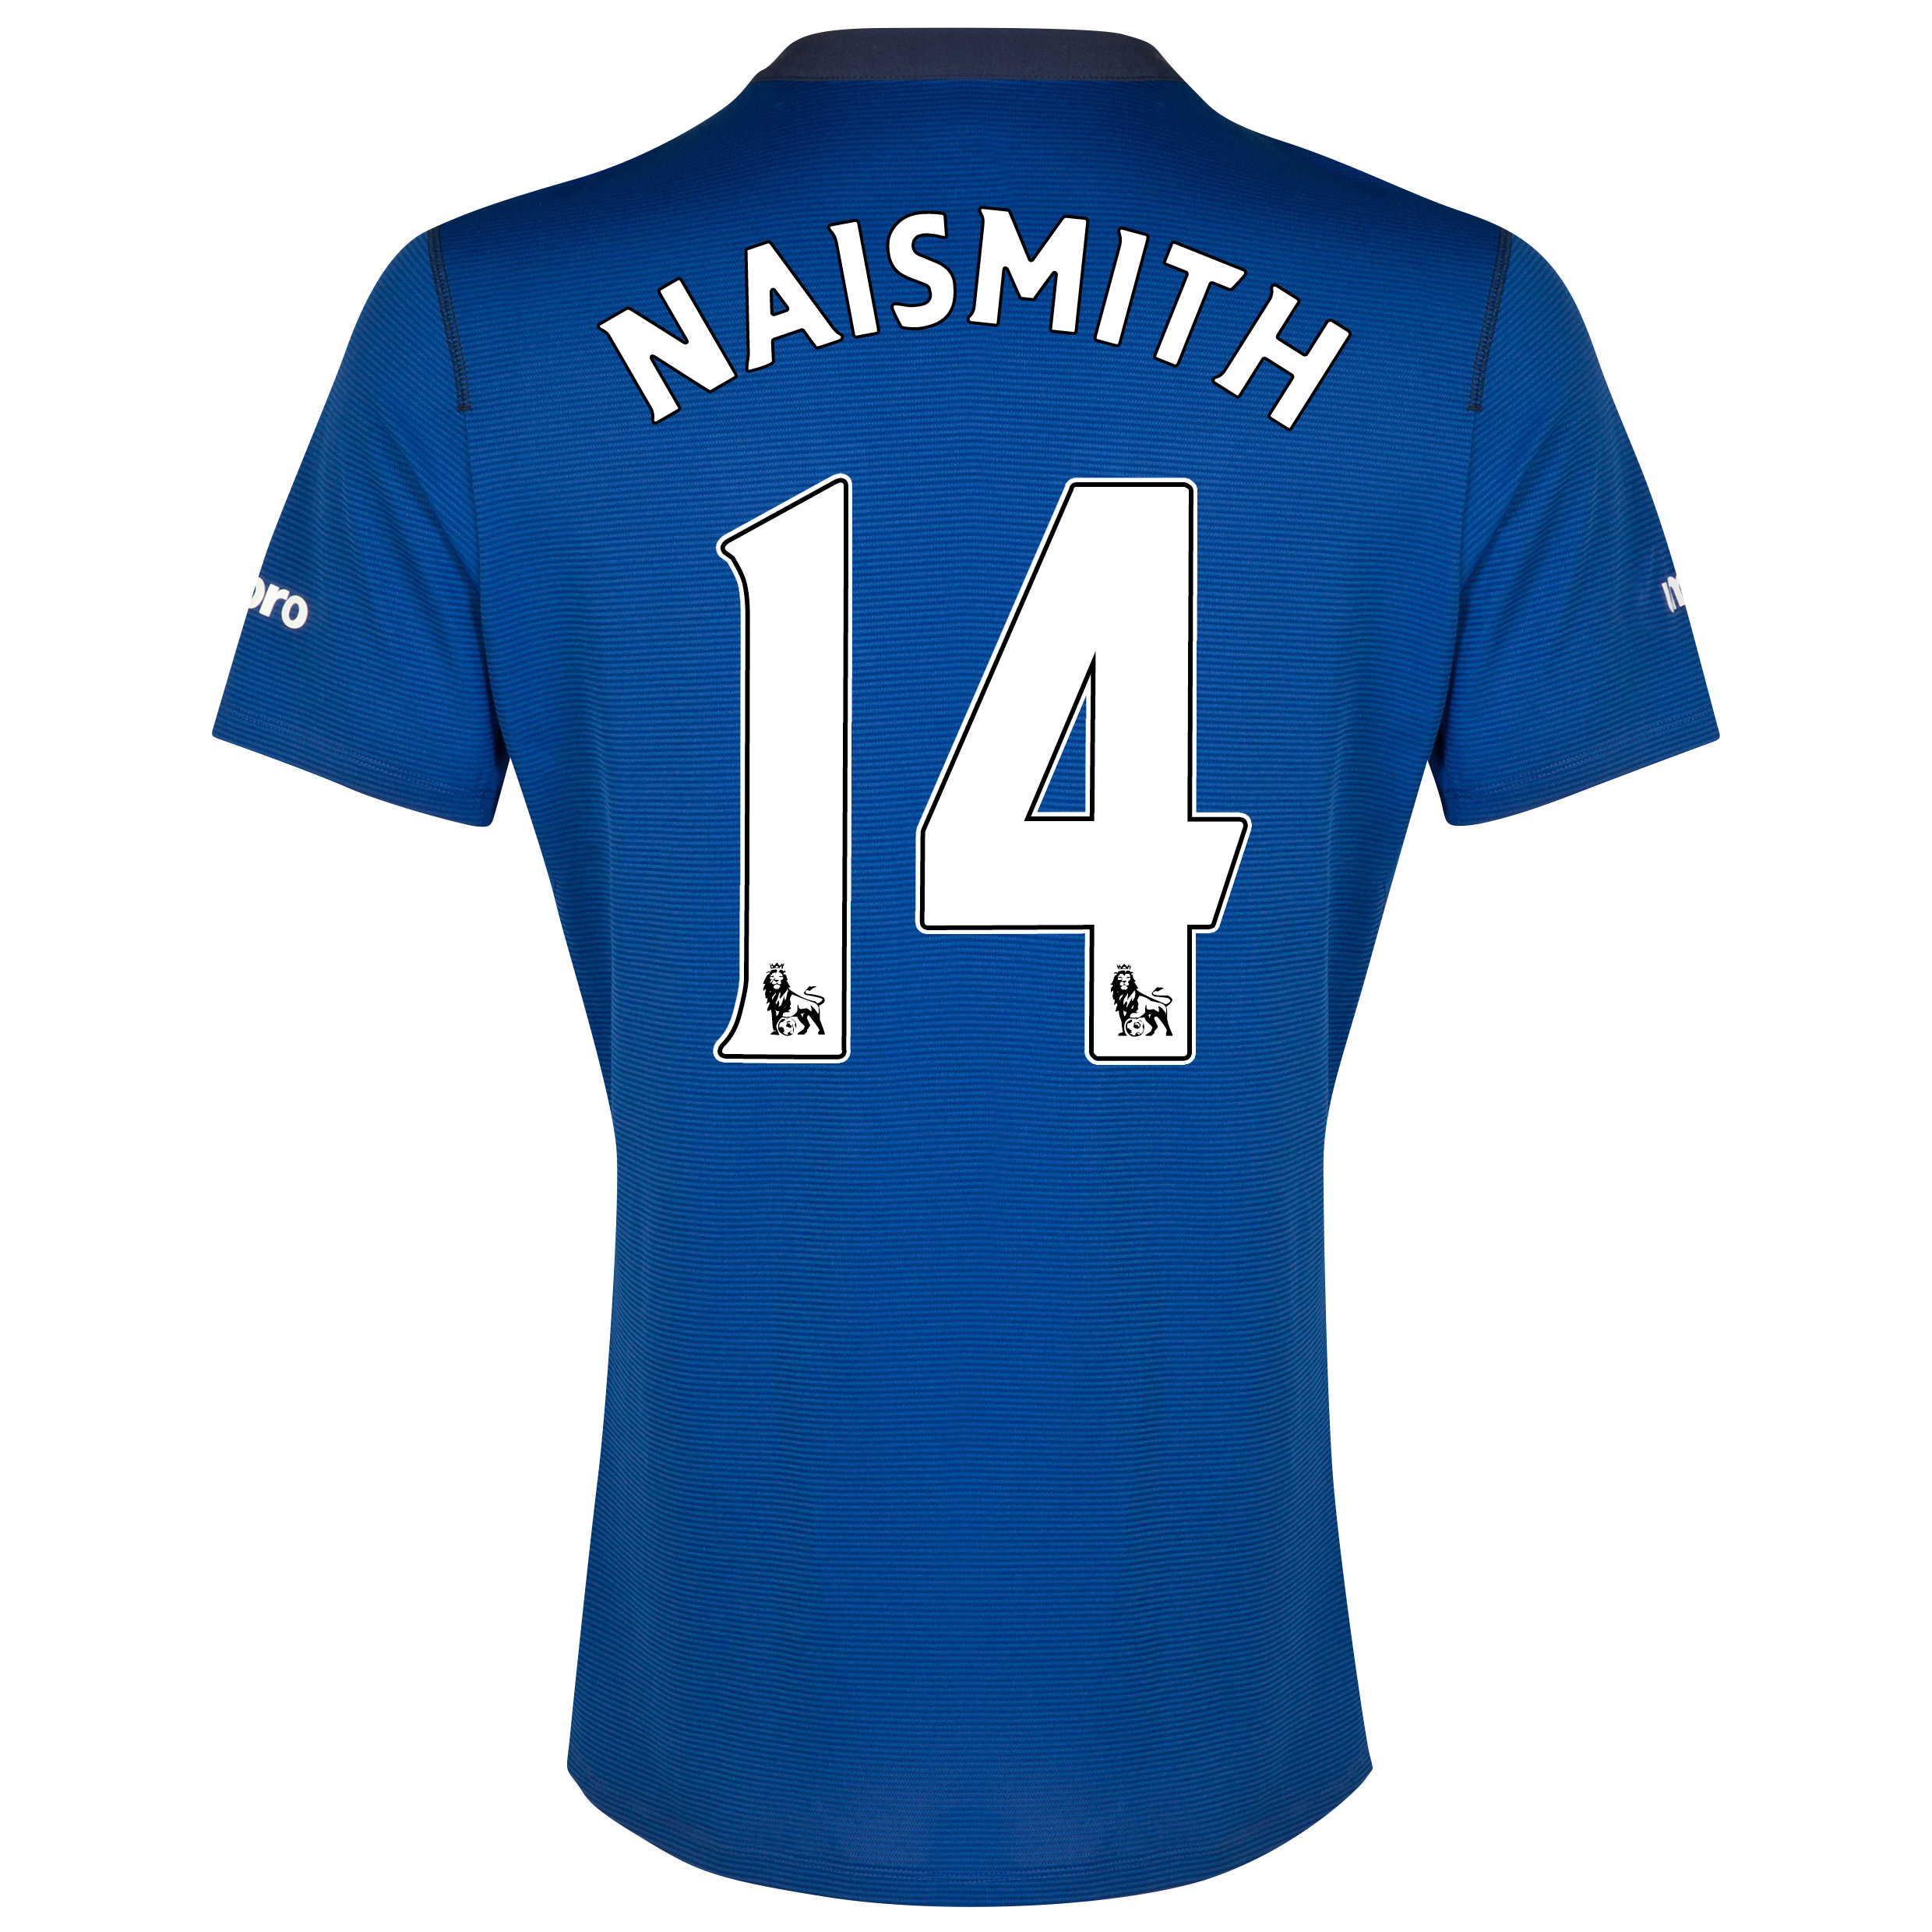 Everton SS Home Shirt 2014/15 - Womens with Naismith 14 printing